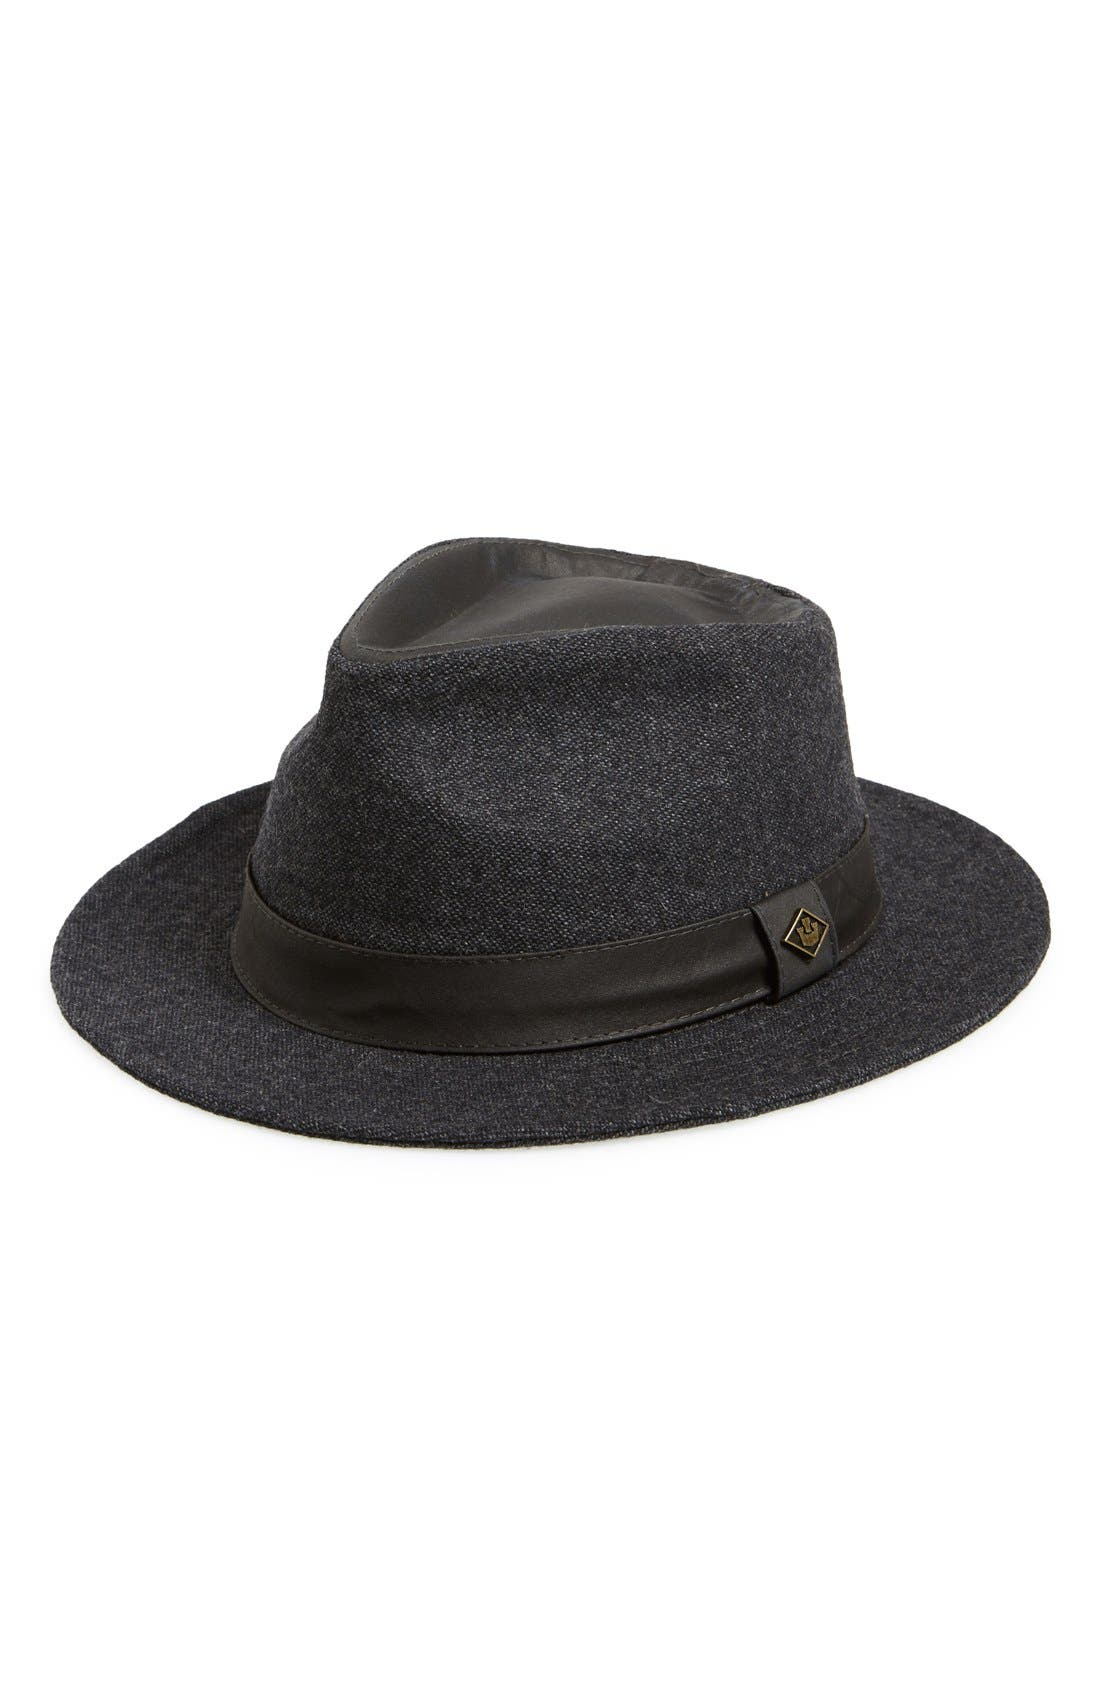 GOORIN BROTHERS,                             Goorin Brothers 'Big Tuna' Fedora,                             Main thumbnail 1, color,                             010